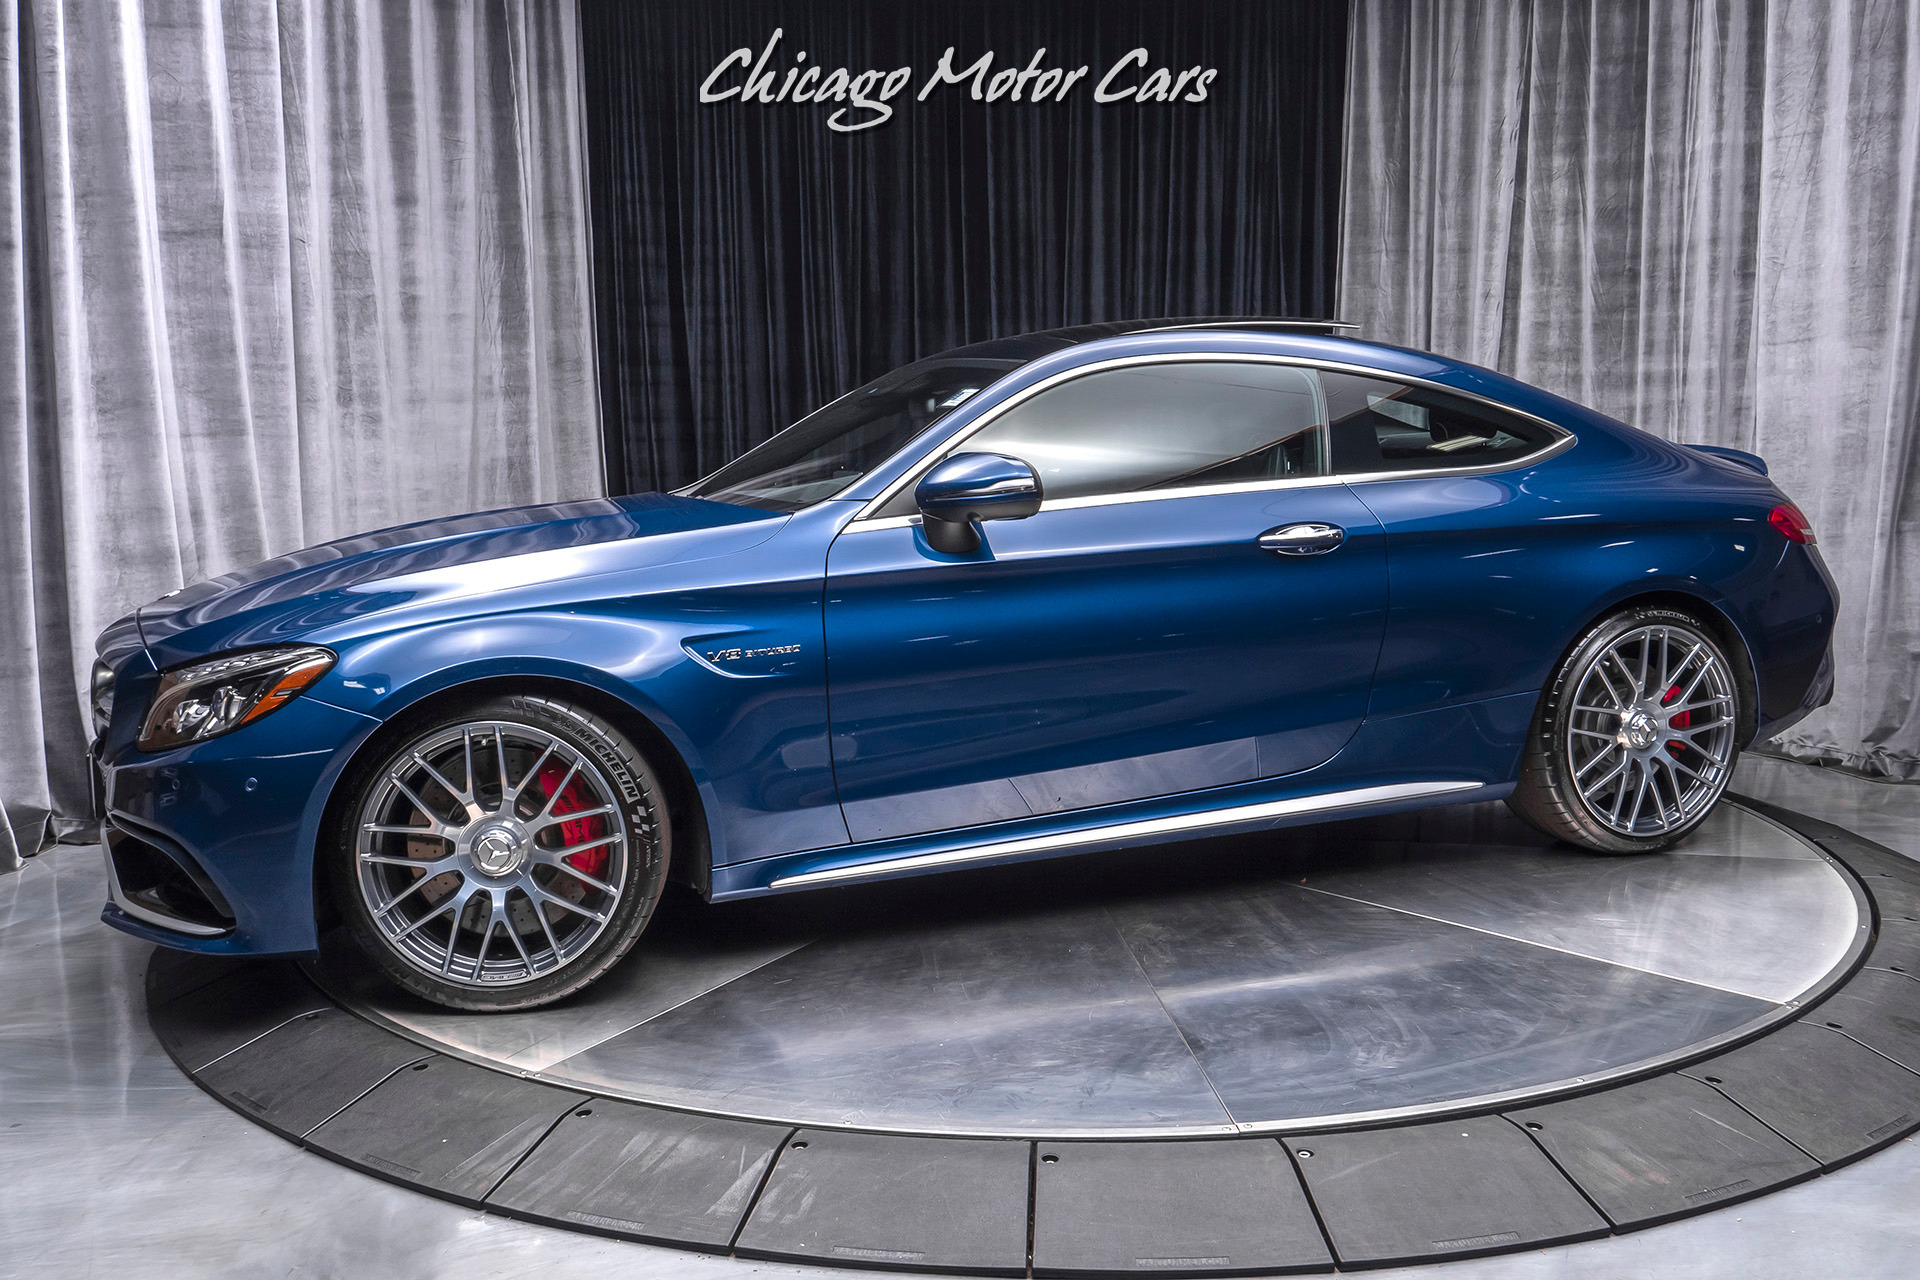 Used 2017 Mercedes Benz C63 S Amg Coupe Msrp 87 480 Premium Package 3 For Sale Special Pricing Chicago Motor Cars Stock 16135